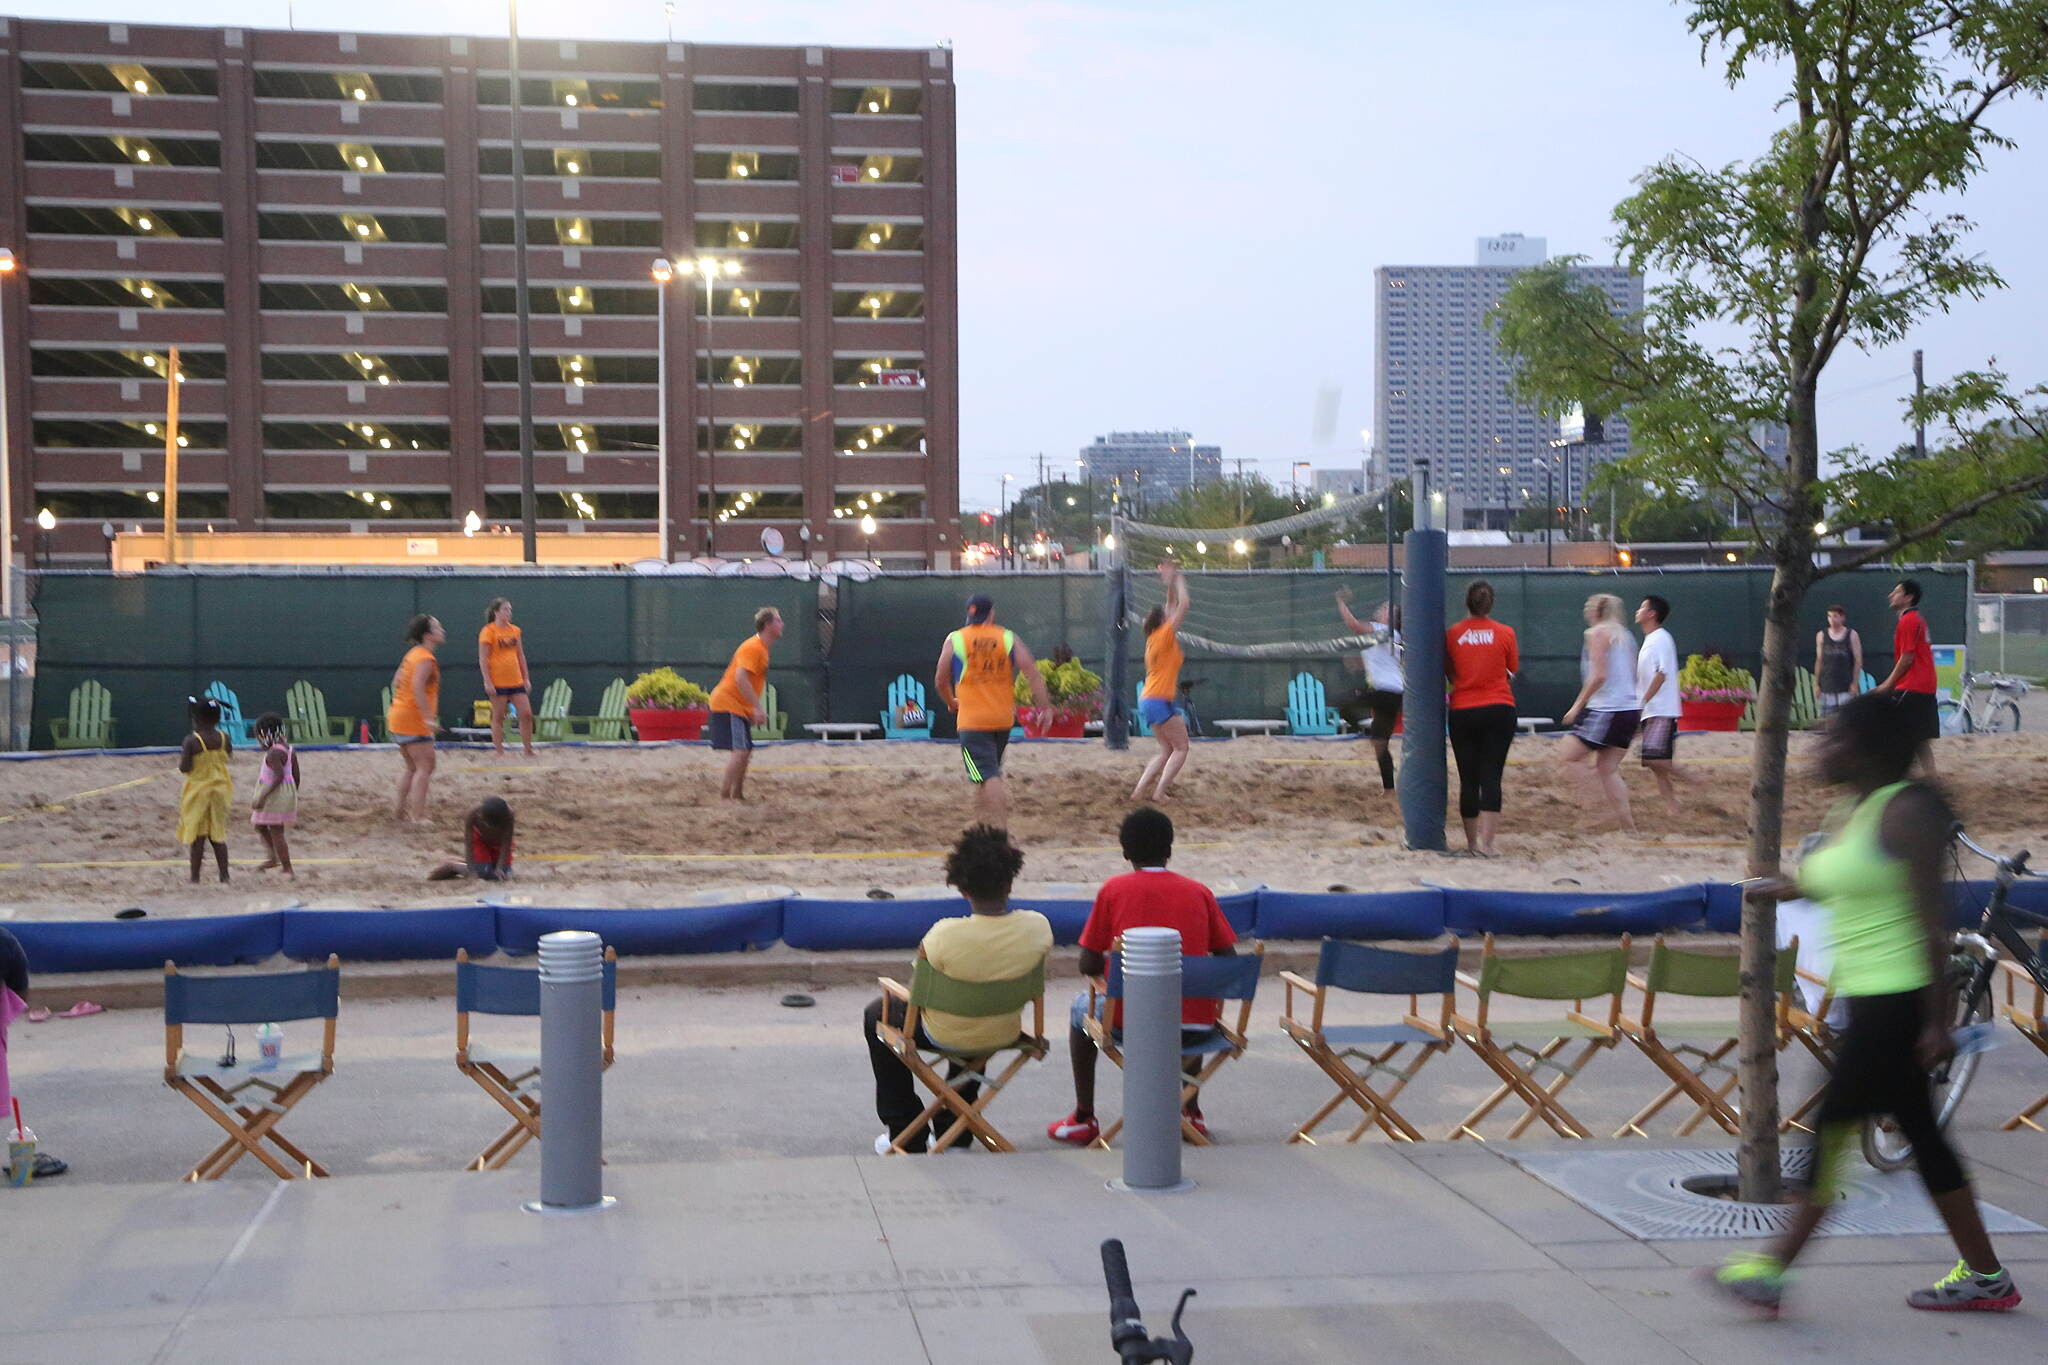 Detroit RiverWalk Volleyball game along the path